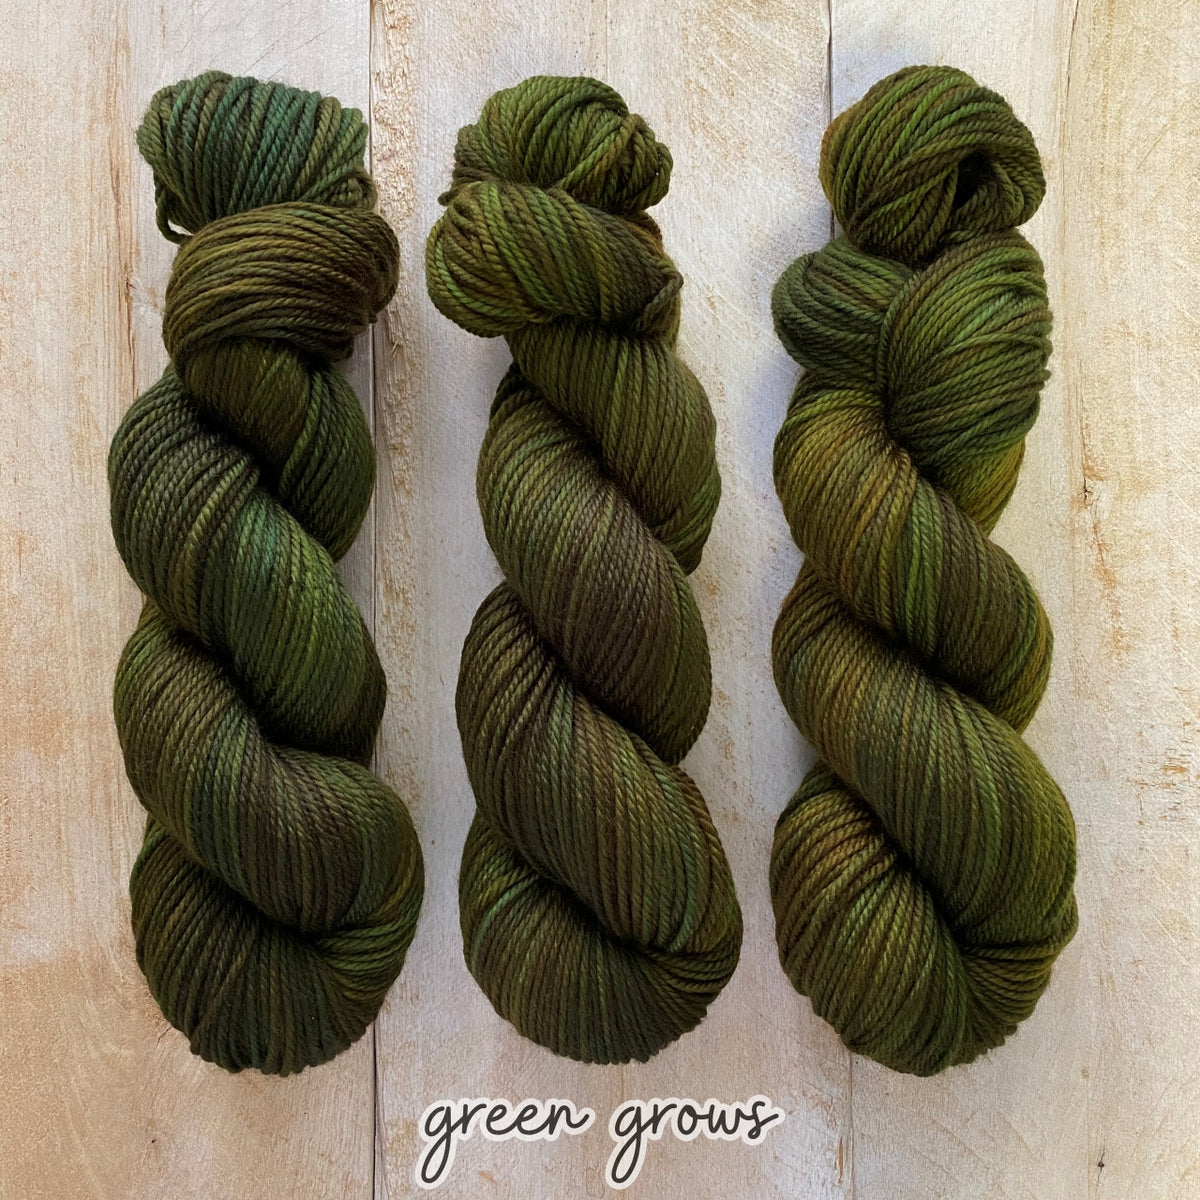 GREEN GROWS by Louise Robert Design | DK PURE hand-dyed Variegated yarn